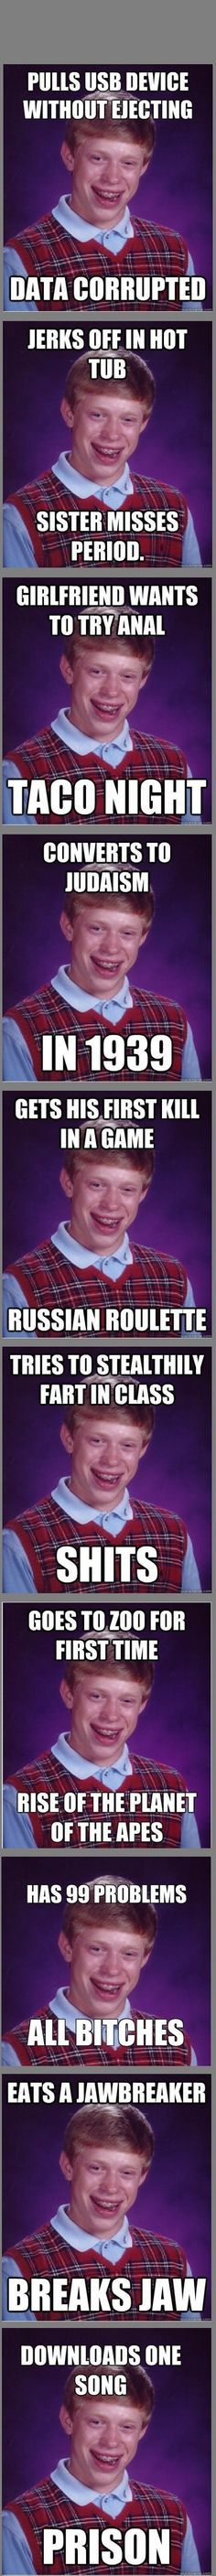 Bad luck brian comp